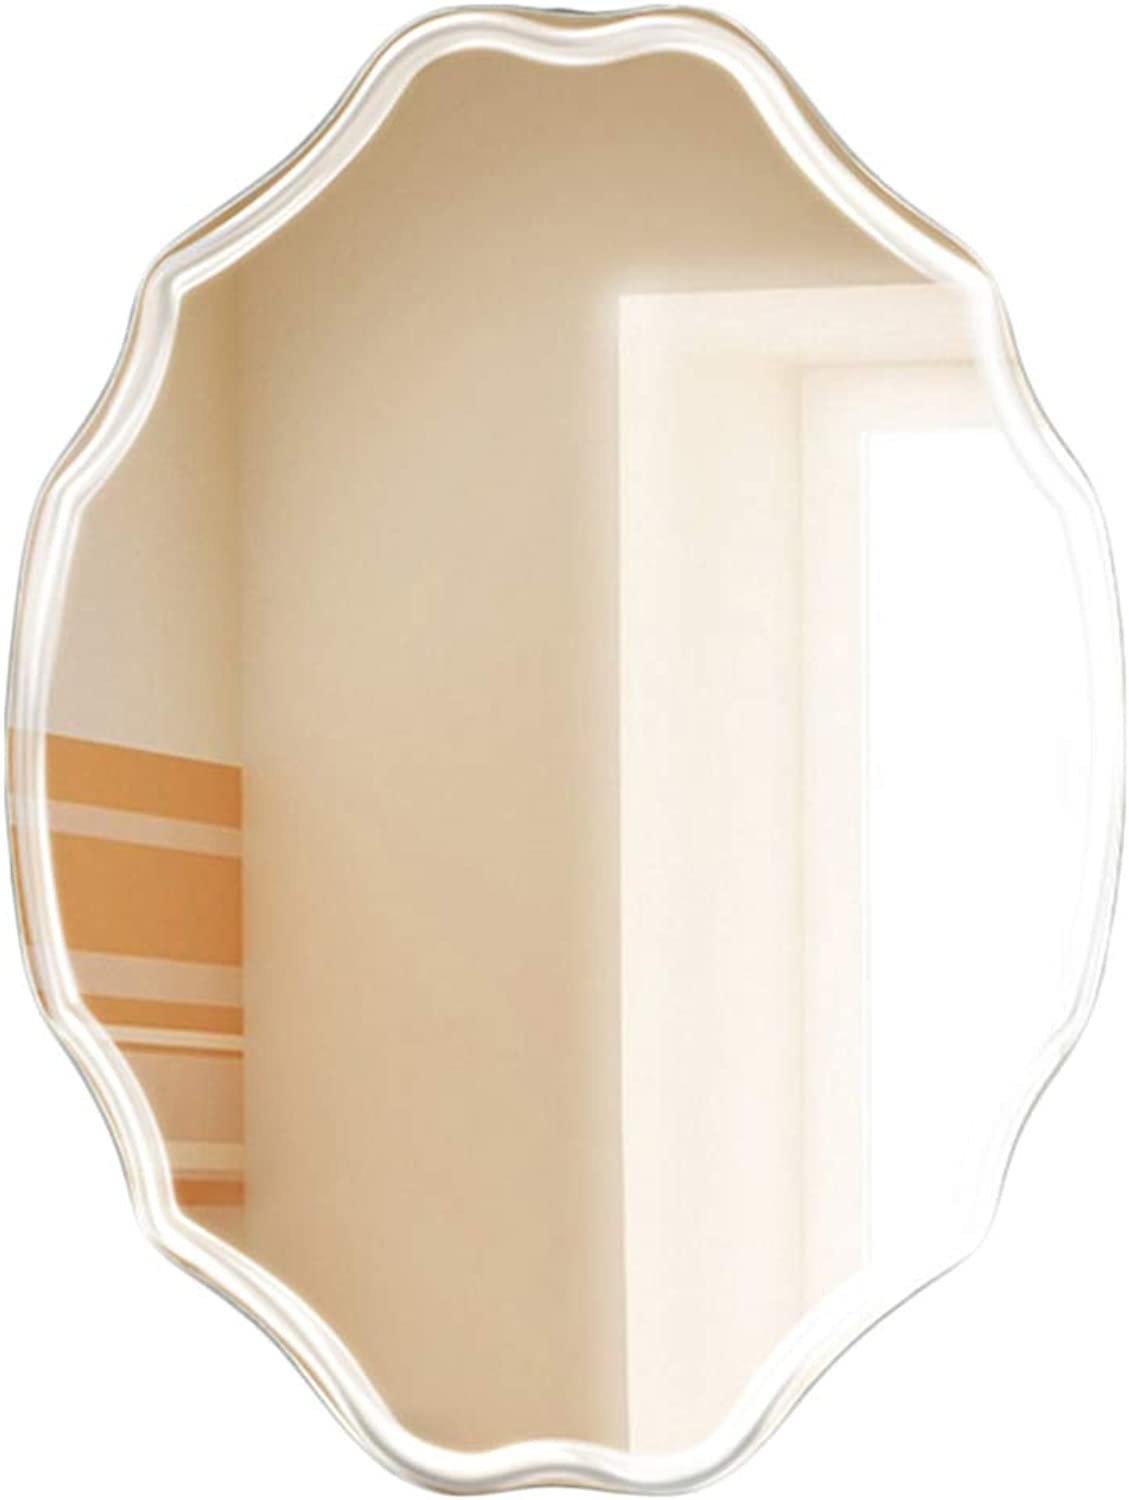 YANZHEN Mirror Wall-Mounted Frameless Car Engraved Hypotenuse Ultra-Clear Bathroom Simple and Modern Silver Mirror, 3 Sizes (color   Silver, Size   45x60cm)